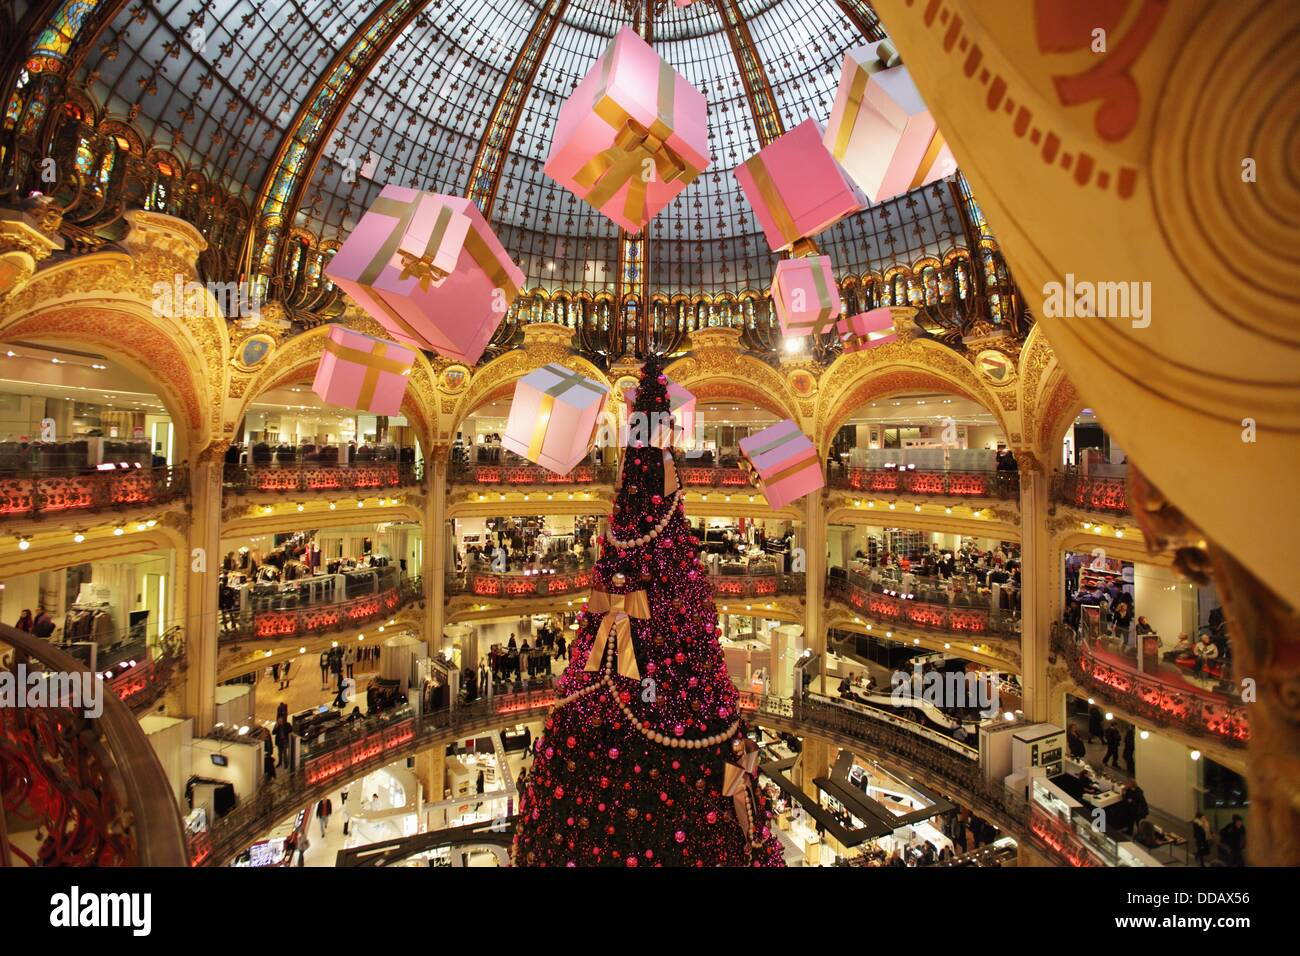 Christmas Decorations In Galeries Lafayette Department Store, Paris,  Île De France, France